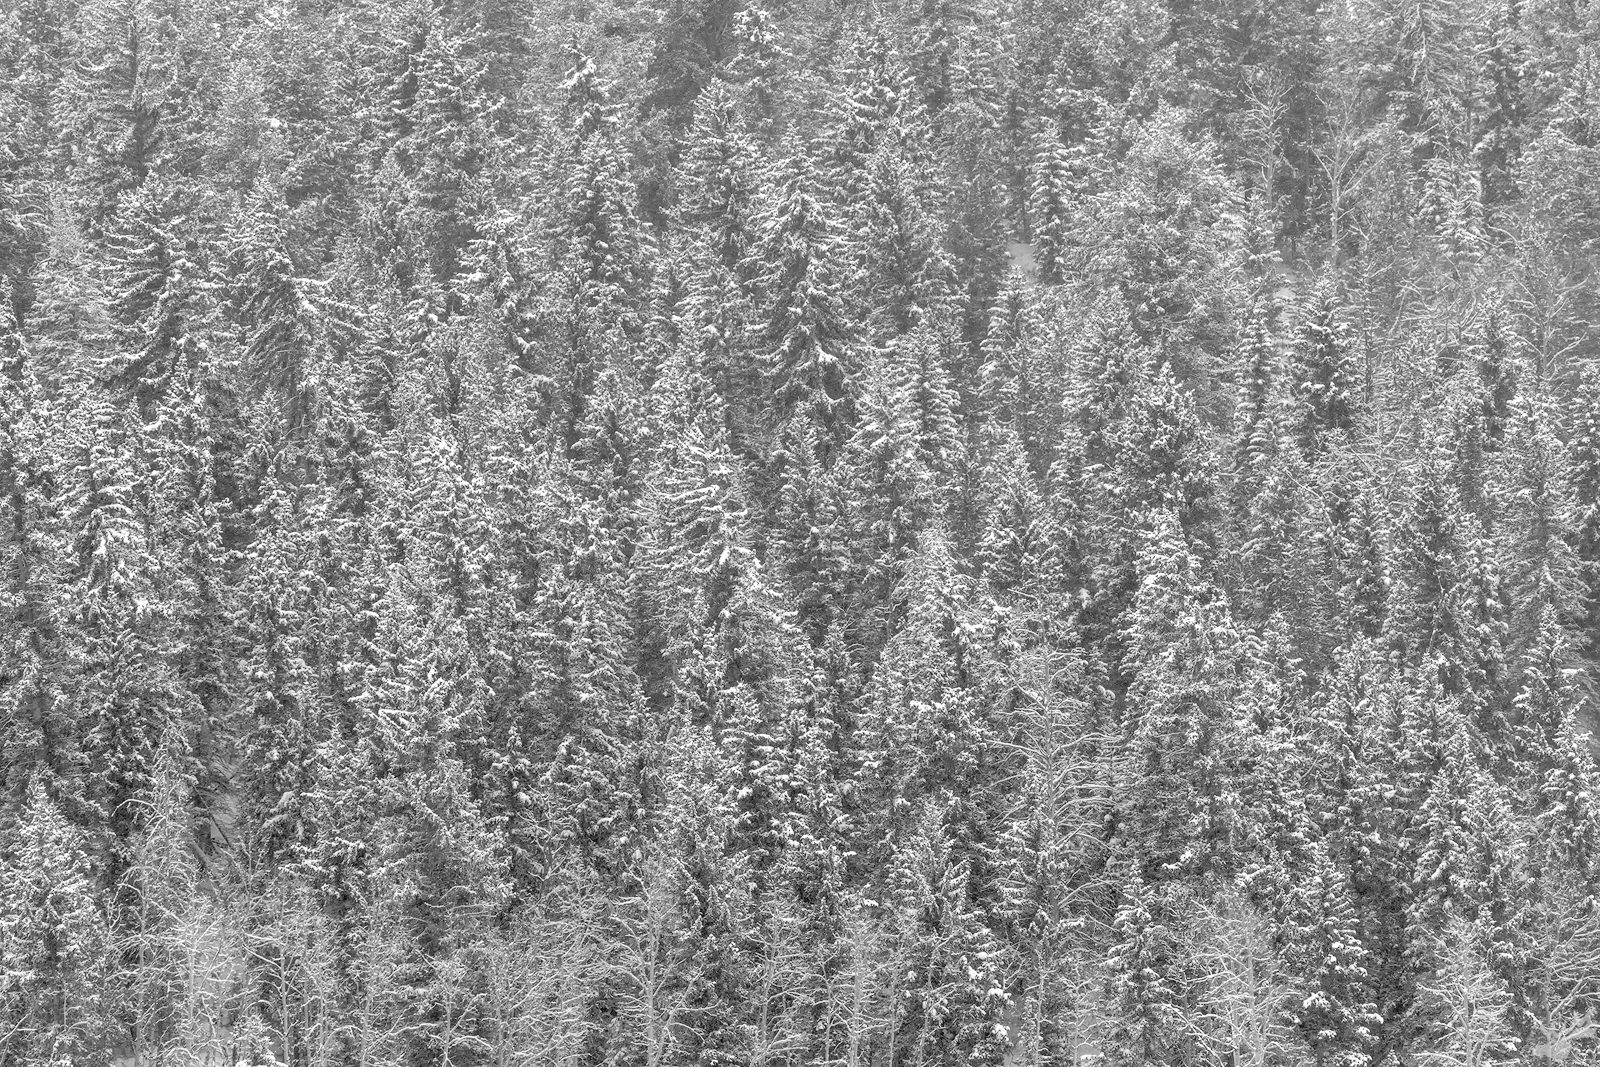 abstract, snow, trees